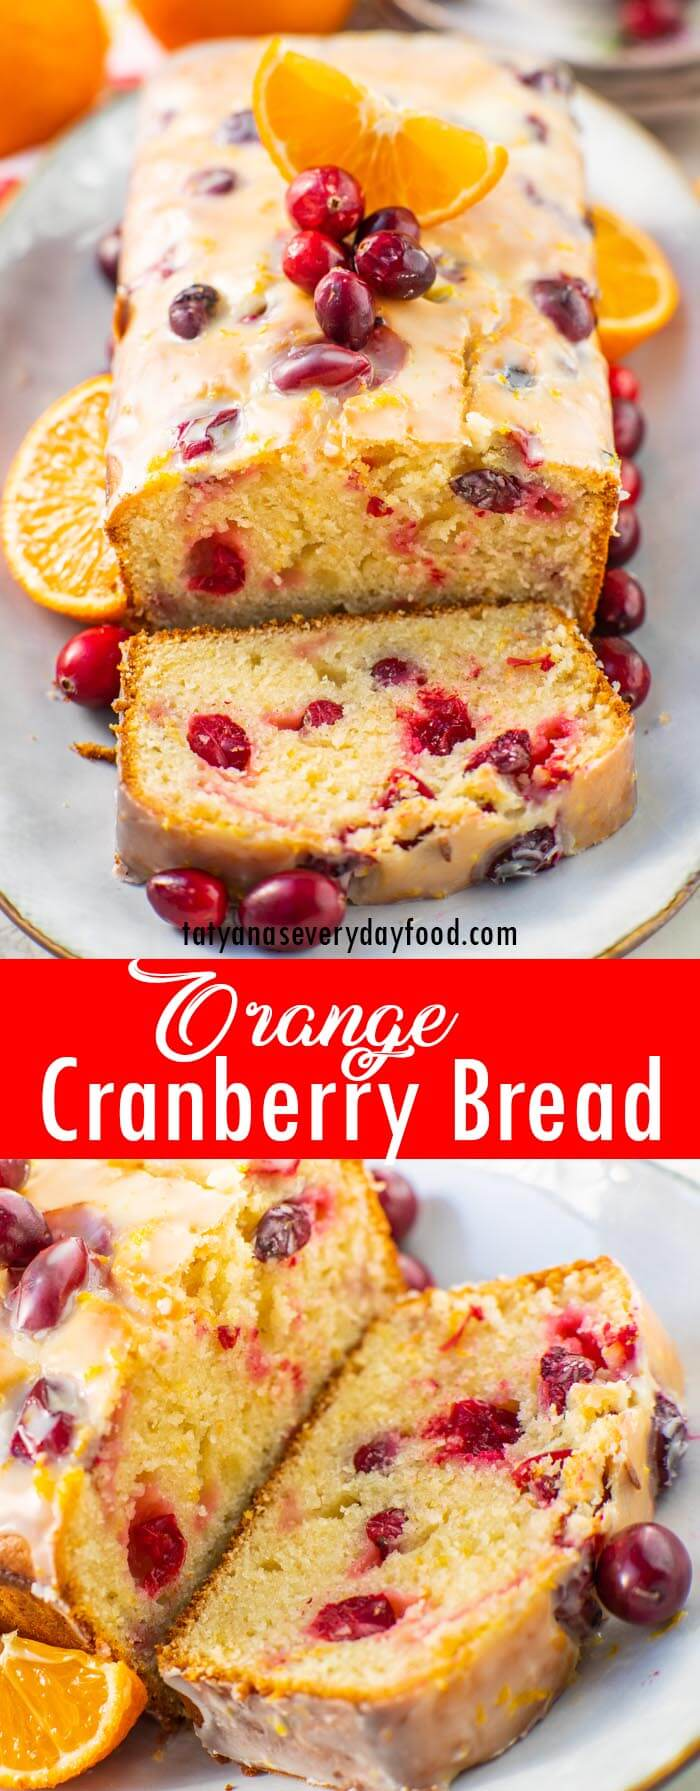 Orange Cranberry Loaf Recipe with video